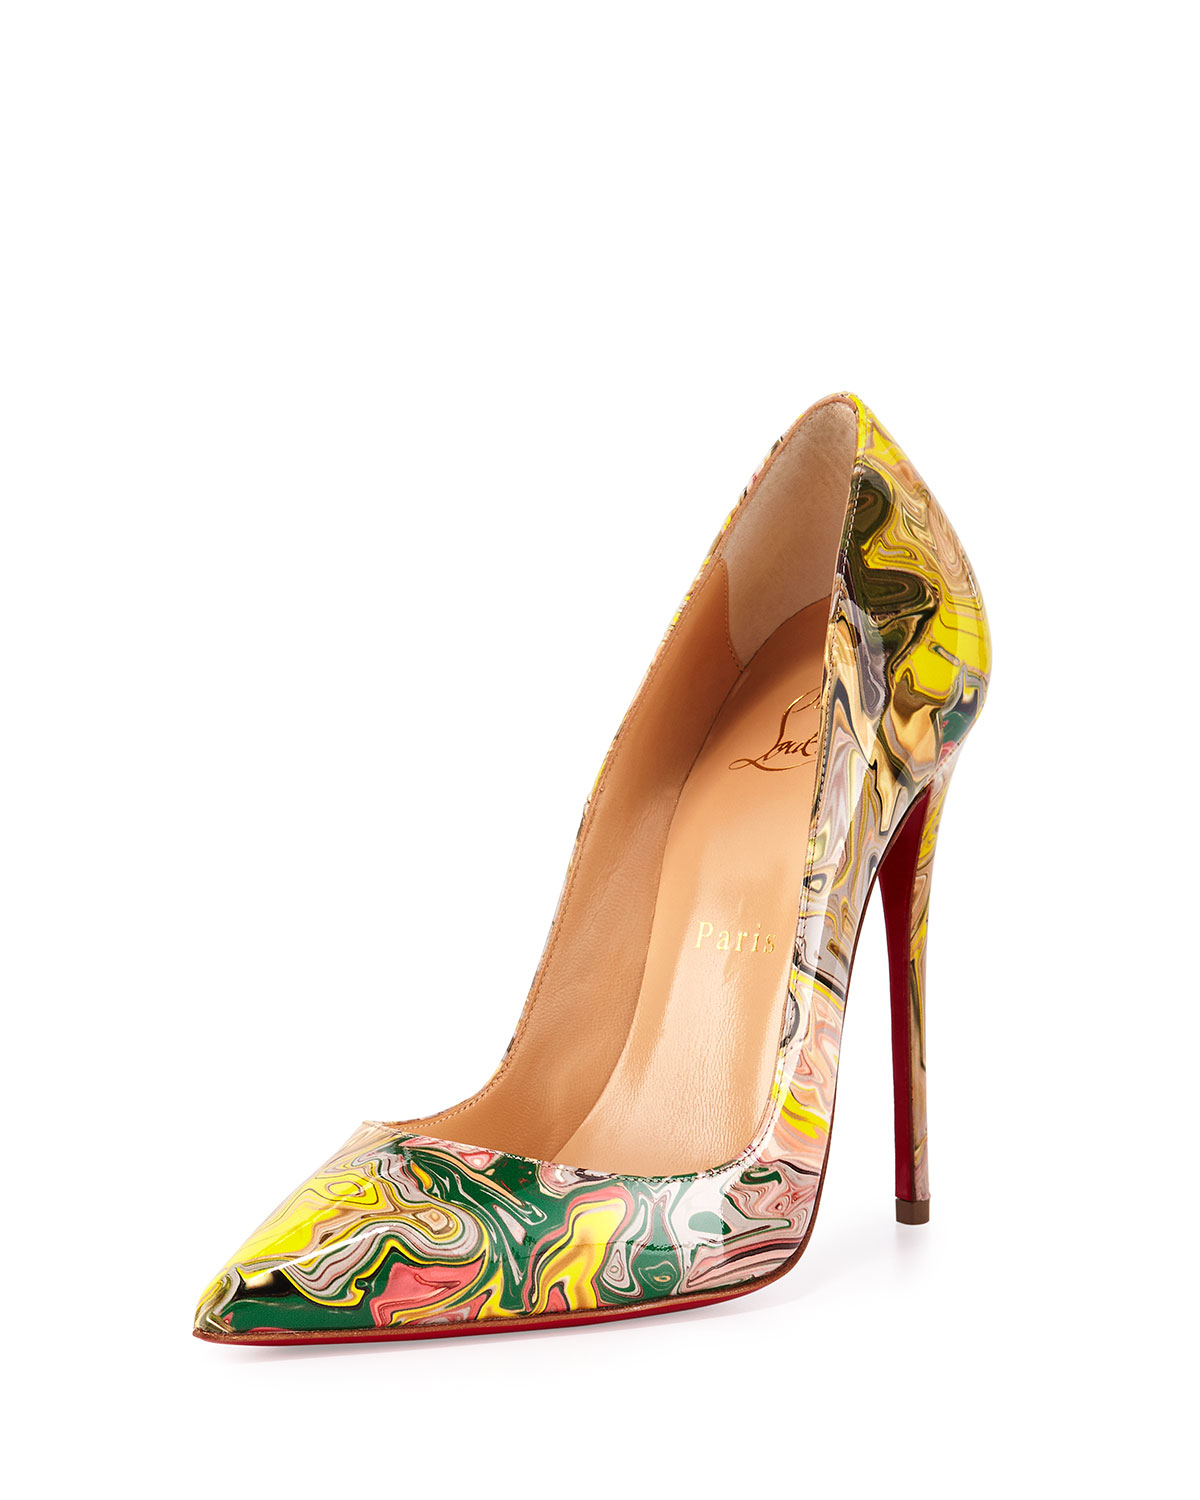 87d9080e1a69 Gallery. Previously sold at  Neiman Marcus · Women s Christian Louboutin So  Kate ...